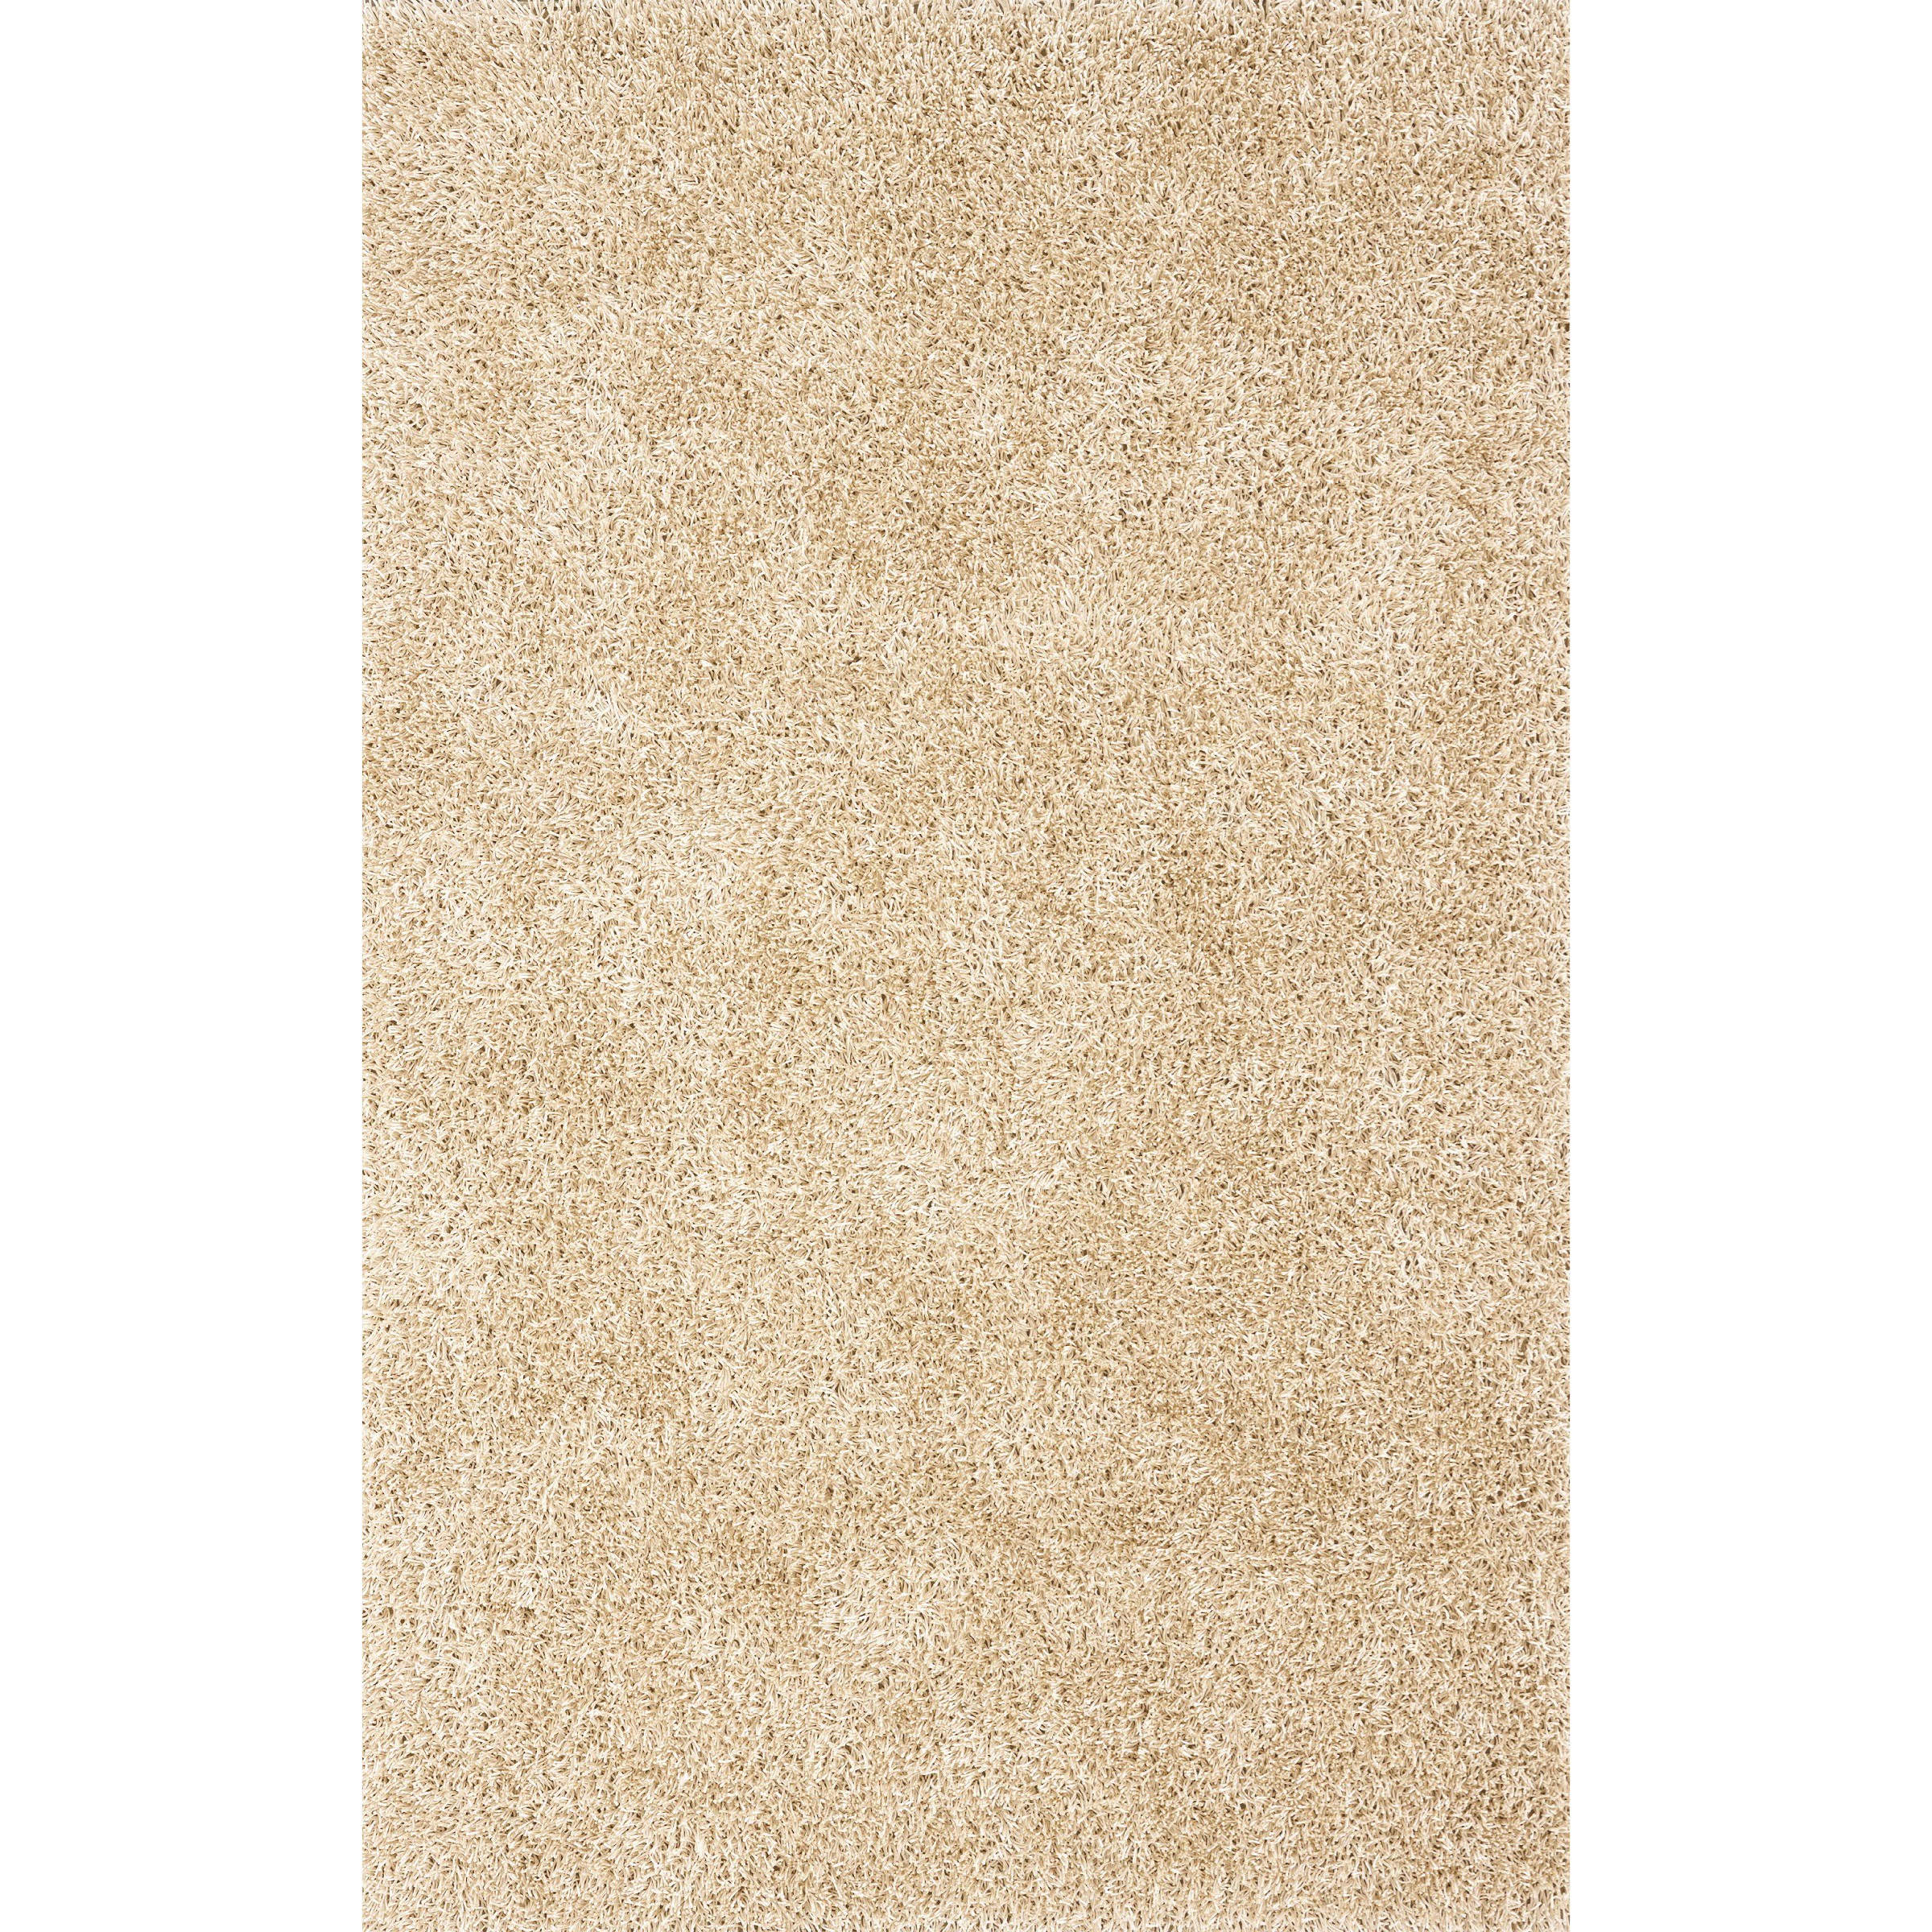 """Illusions Ivory 3'6""""X5'6"""" Rug by Dalyn at Arwood's Furniture"""